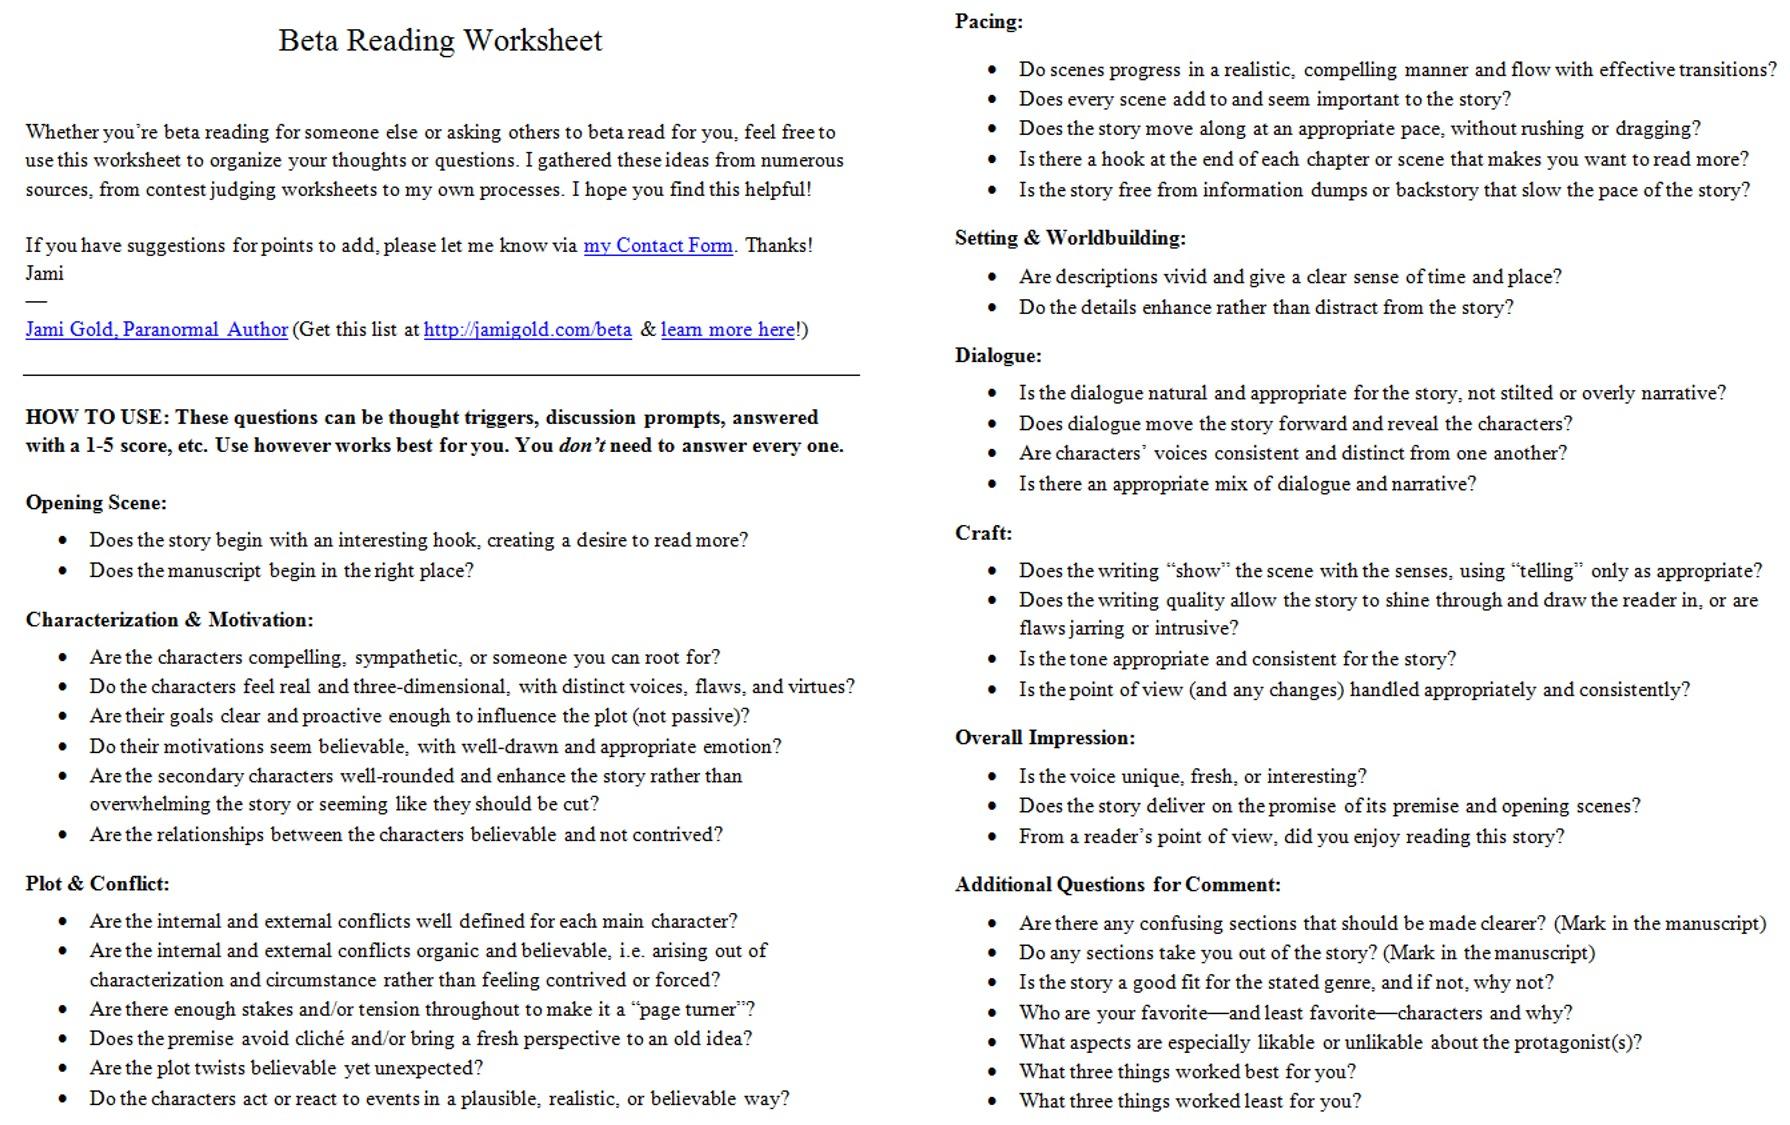 Aldiablosus  Stunning Worksheets For Writers  Jami Gold Paranormal Author With Licious Screen Shot Of The Twopage Beta Reading Worksheet With Delectable Foundation Handwriting Worksheets Also Efl Worksheets In Addition One Grain Of Rice Worksheet And Calculating Area Of Irregular Shapes Worksheets As Well As Phoneme Segmentation Worksheets Kindergarten Additionally D Shape Worksheet From Jamigoldcom With Aldiablosus  Licious Worksheets For Writers  Jami Gold Paranormal Author With Delectable Screen Shot Of The Twopage Beta Reading Worksheet And Stunning Foundation Handwriting Worksheets Also Efl Worksheets In Addition One Grain Of Rice Worksheet From Jamigoldcom